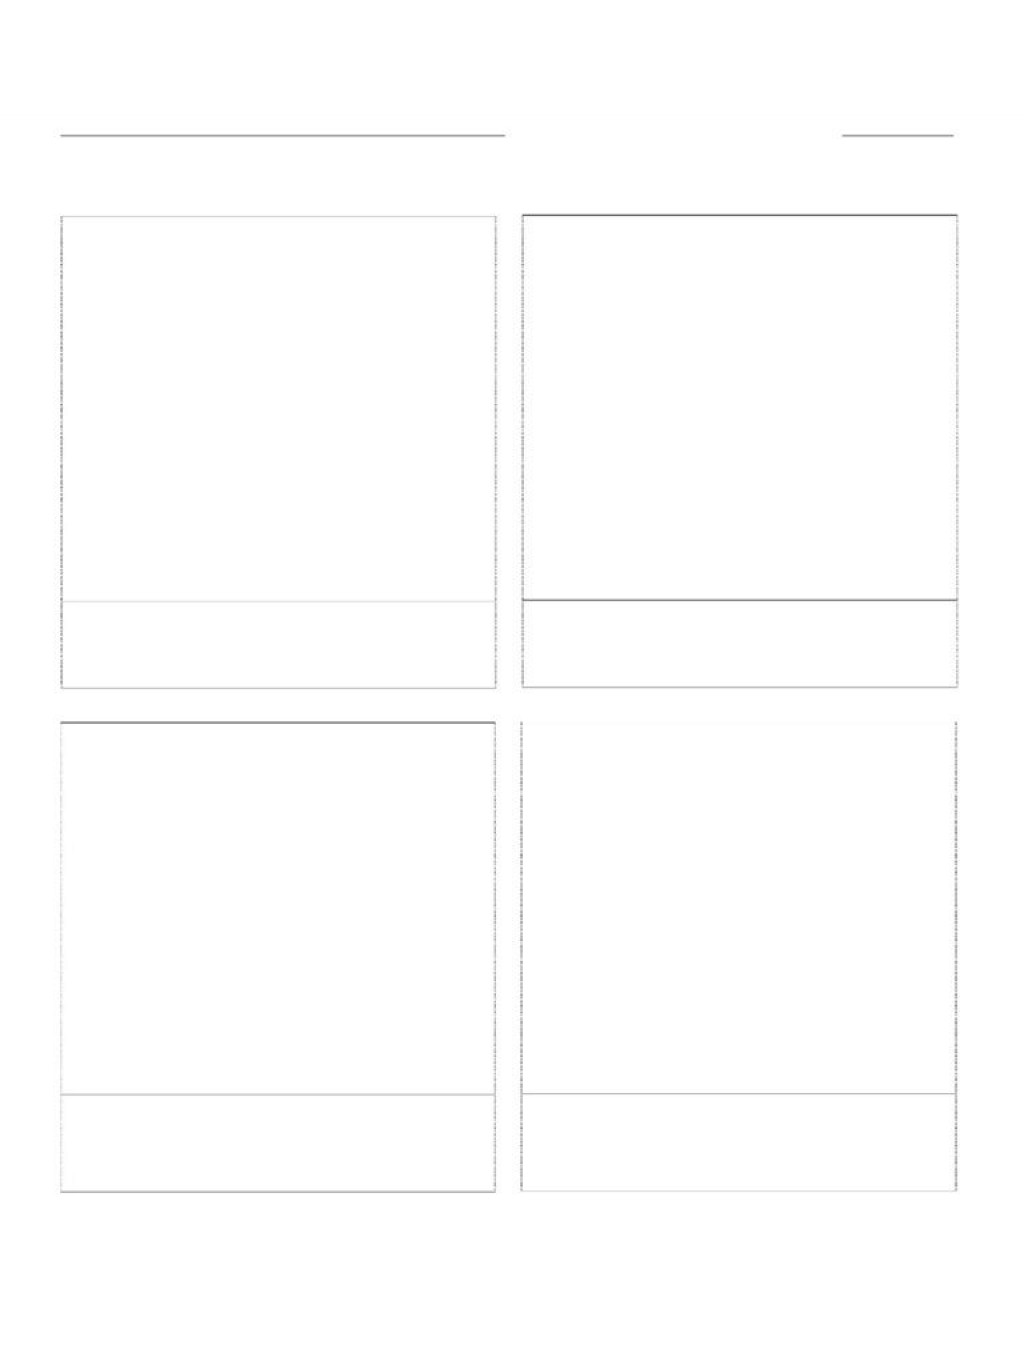 007 Amazing Comic Strip Template Word Image  Doc For Microsoft DocumentLarge